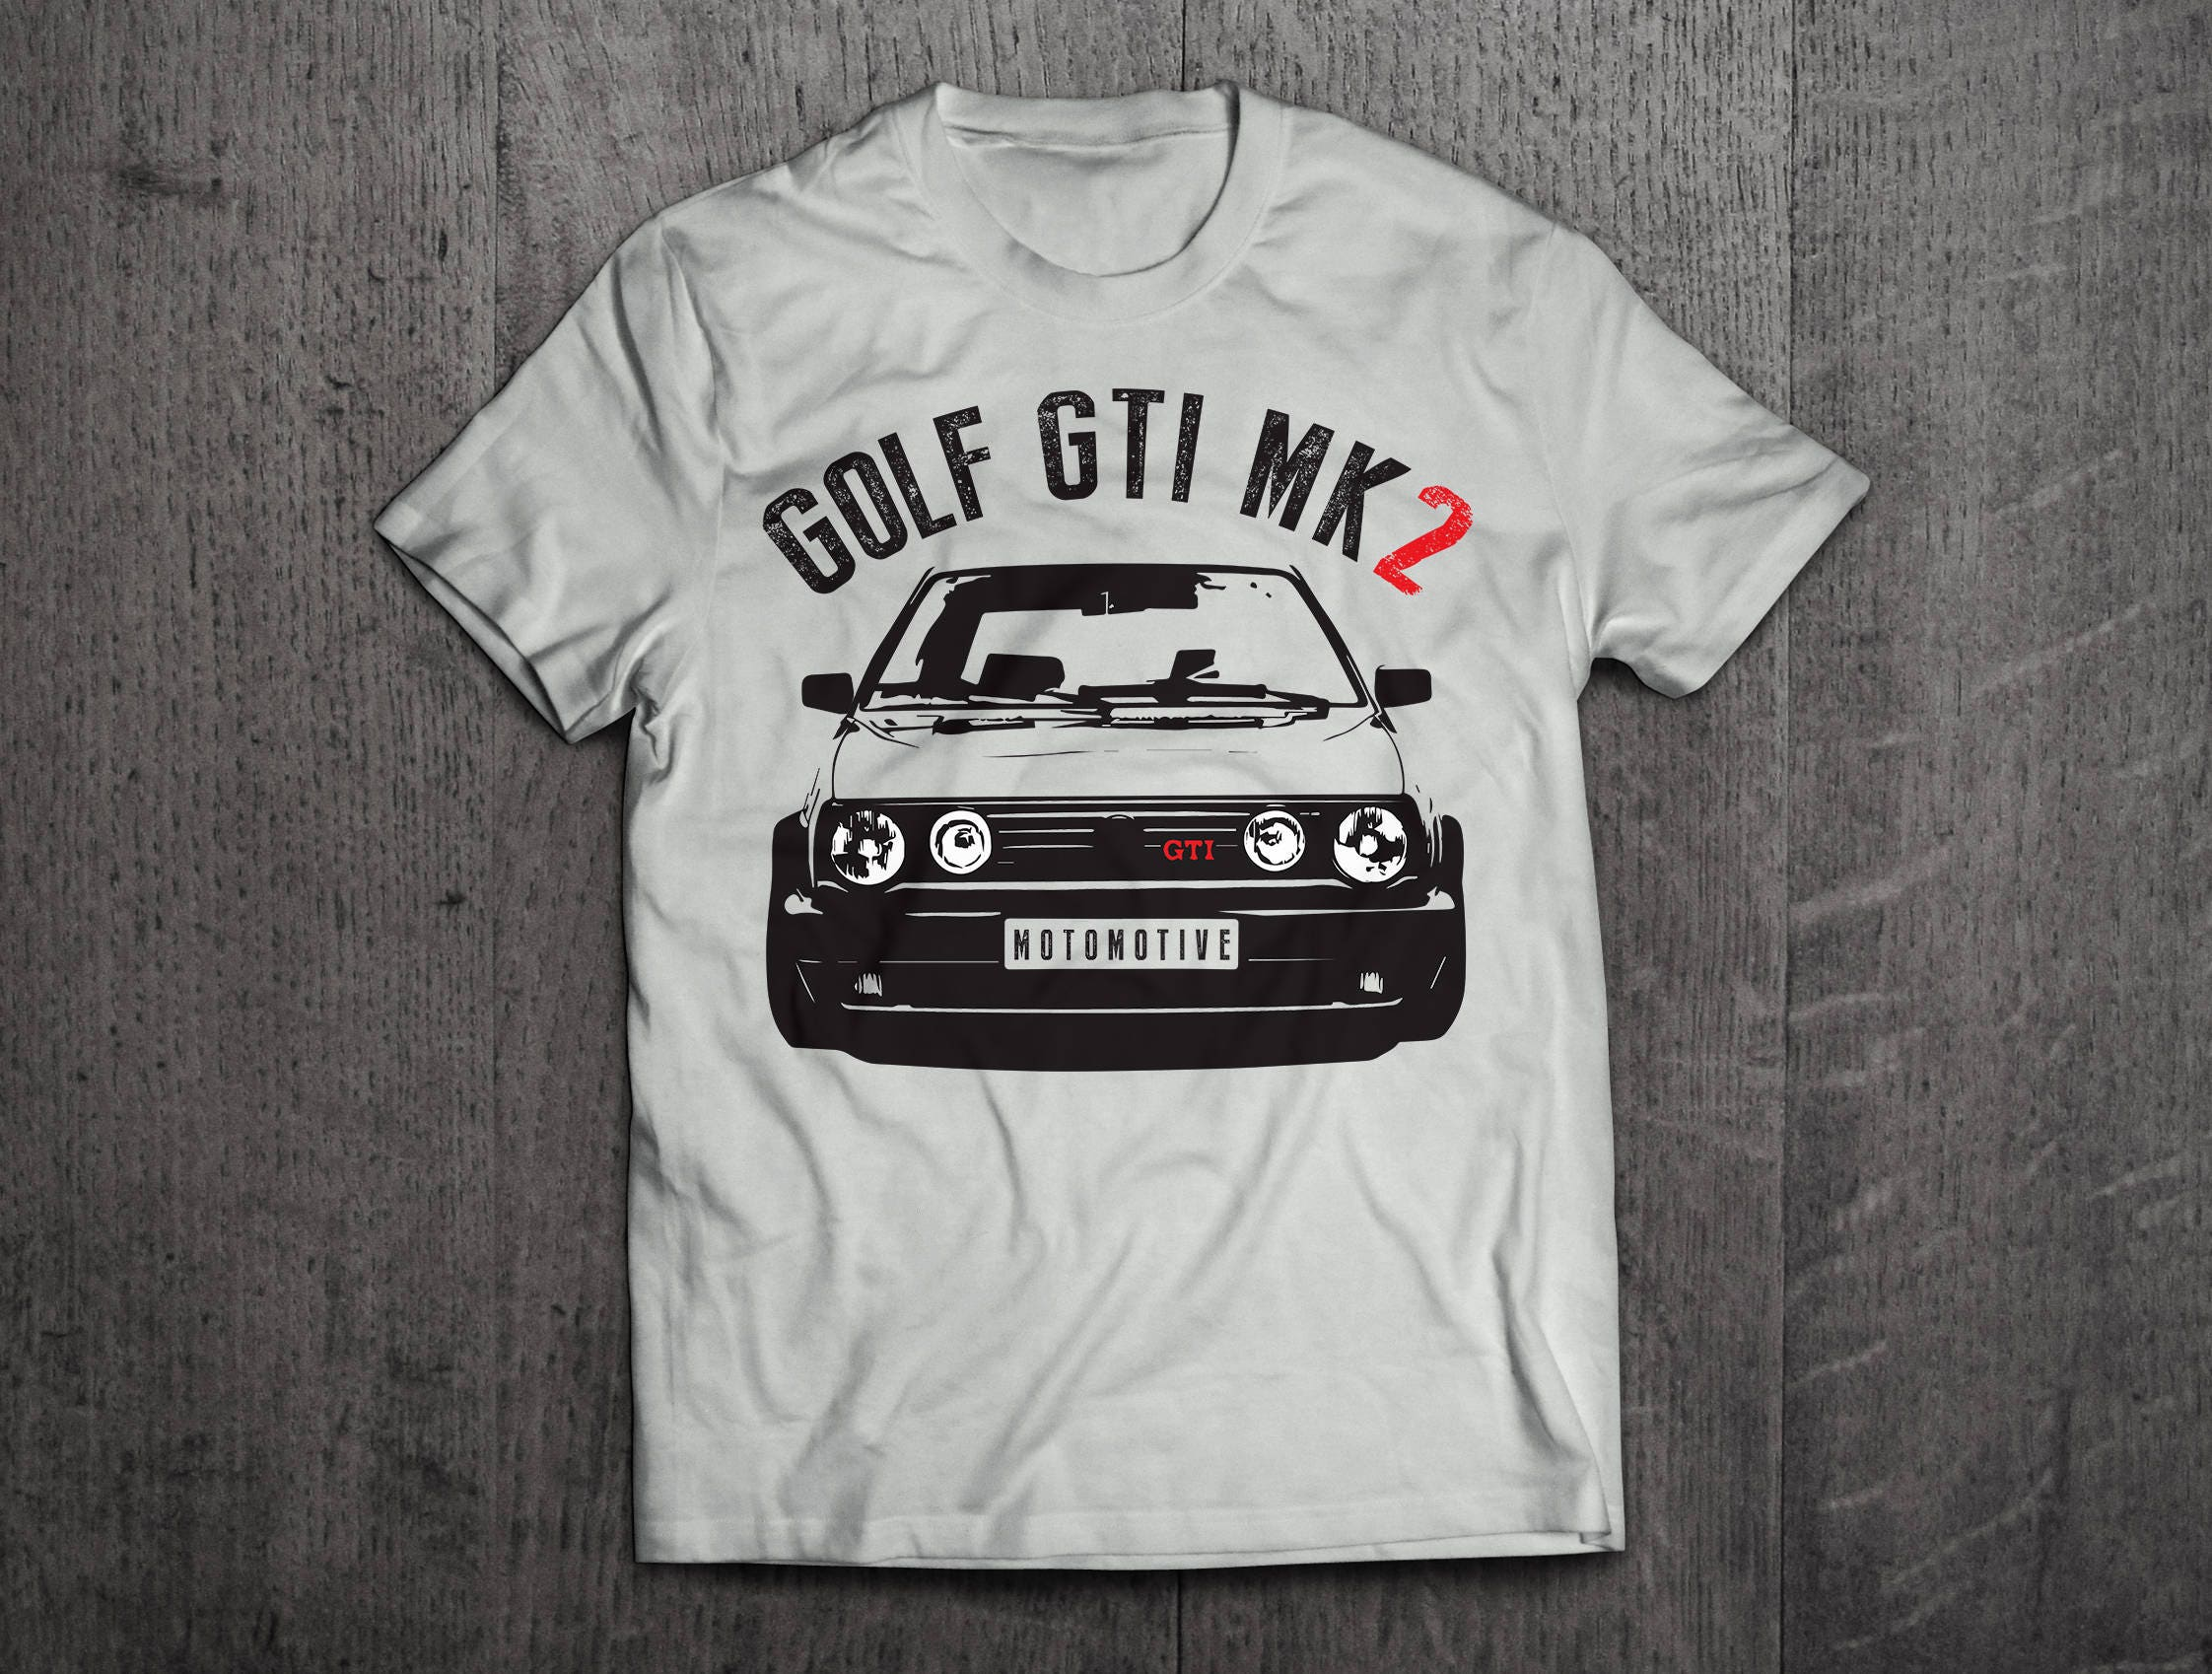 vw golf t shirt golf gti shirts gti mk2 shirts classic. Black Bedroom Furniture Sets. Home Design Ideas